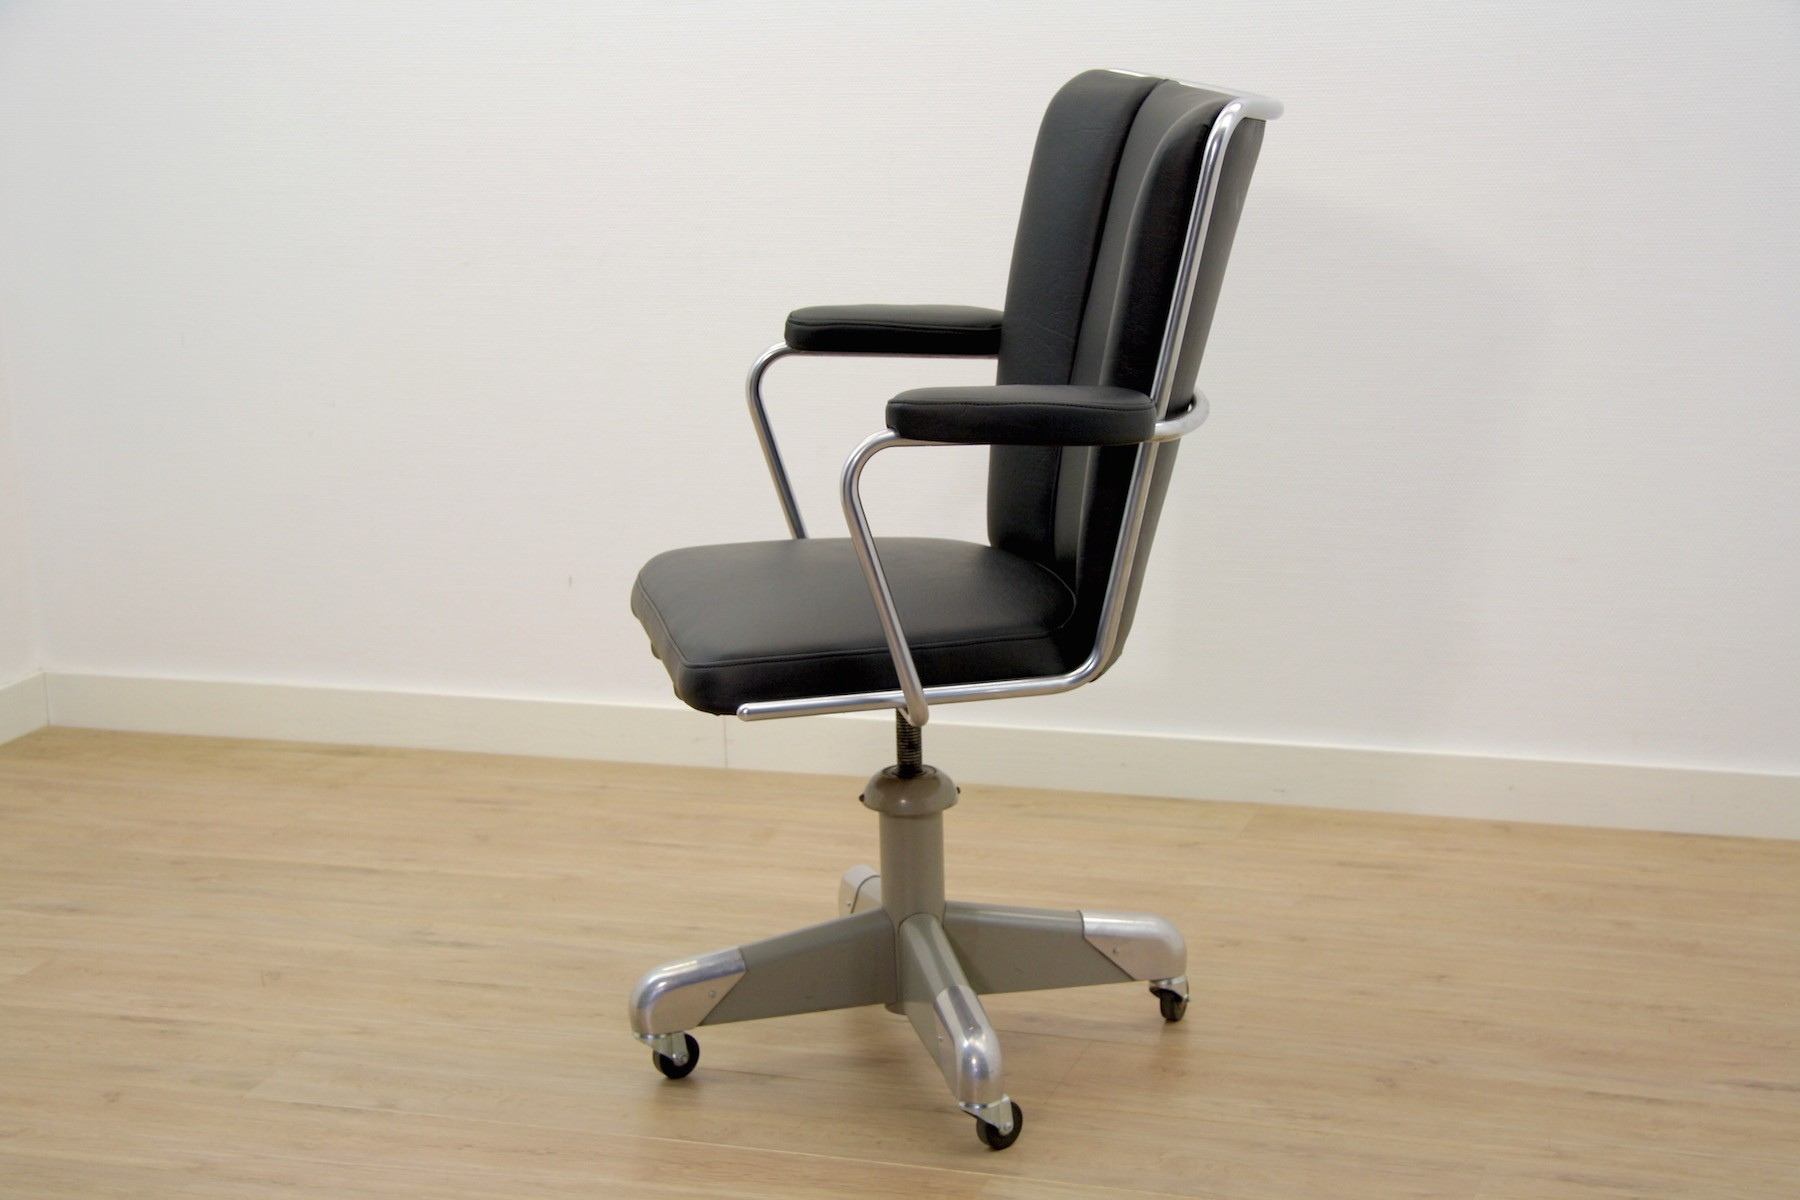 president office chair black. Gispen President Desk Chair With Black Leather, C. HOFFMANN - 1950s. Previous Next Office D